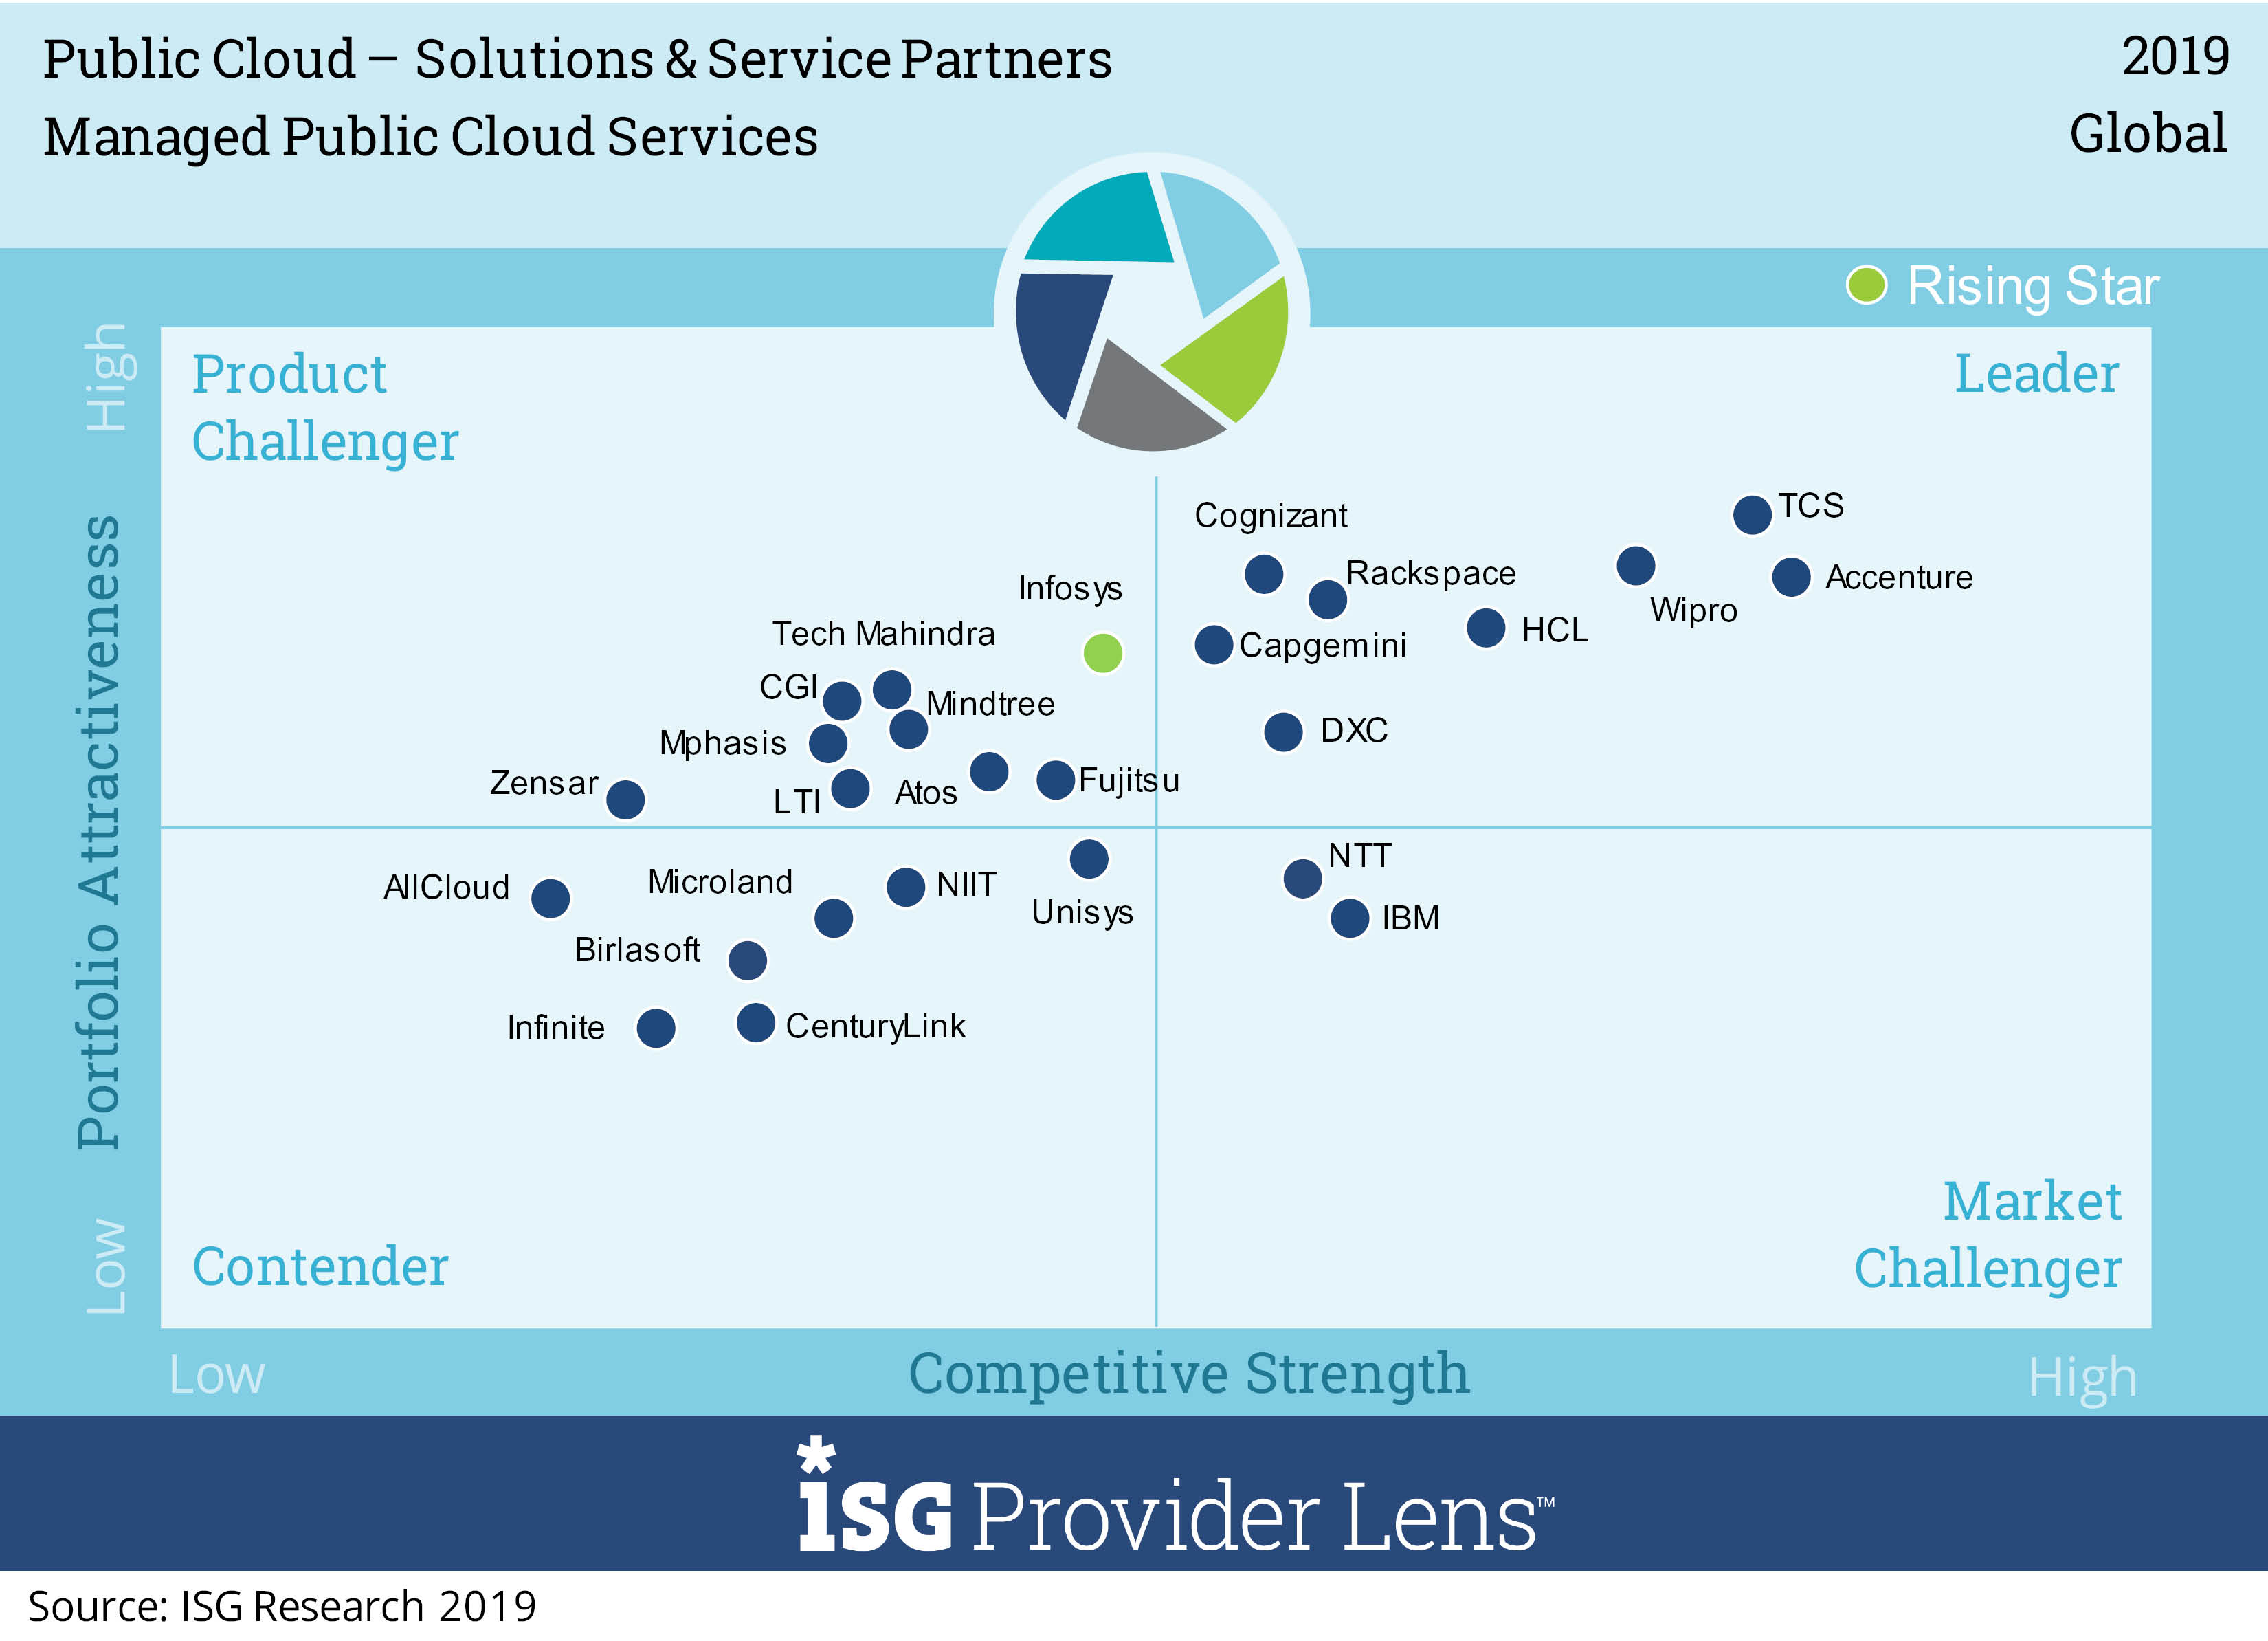 Wipro has been positioned as a Global Leader in Public Cloud – Solutions & Service Partners - ISG Provider Lens™ study 2019